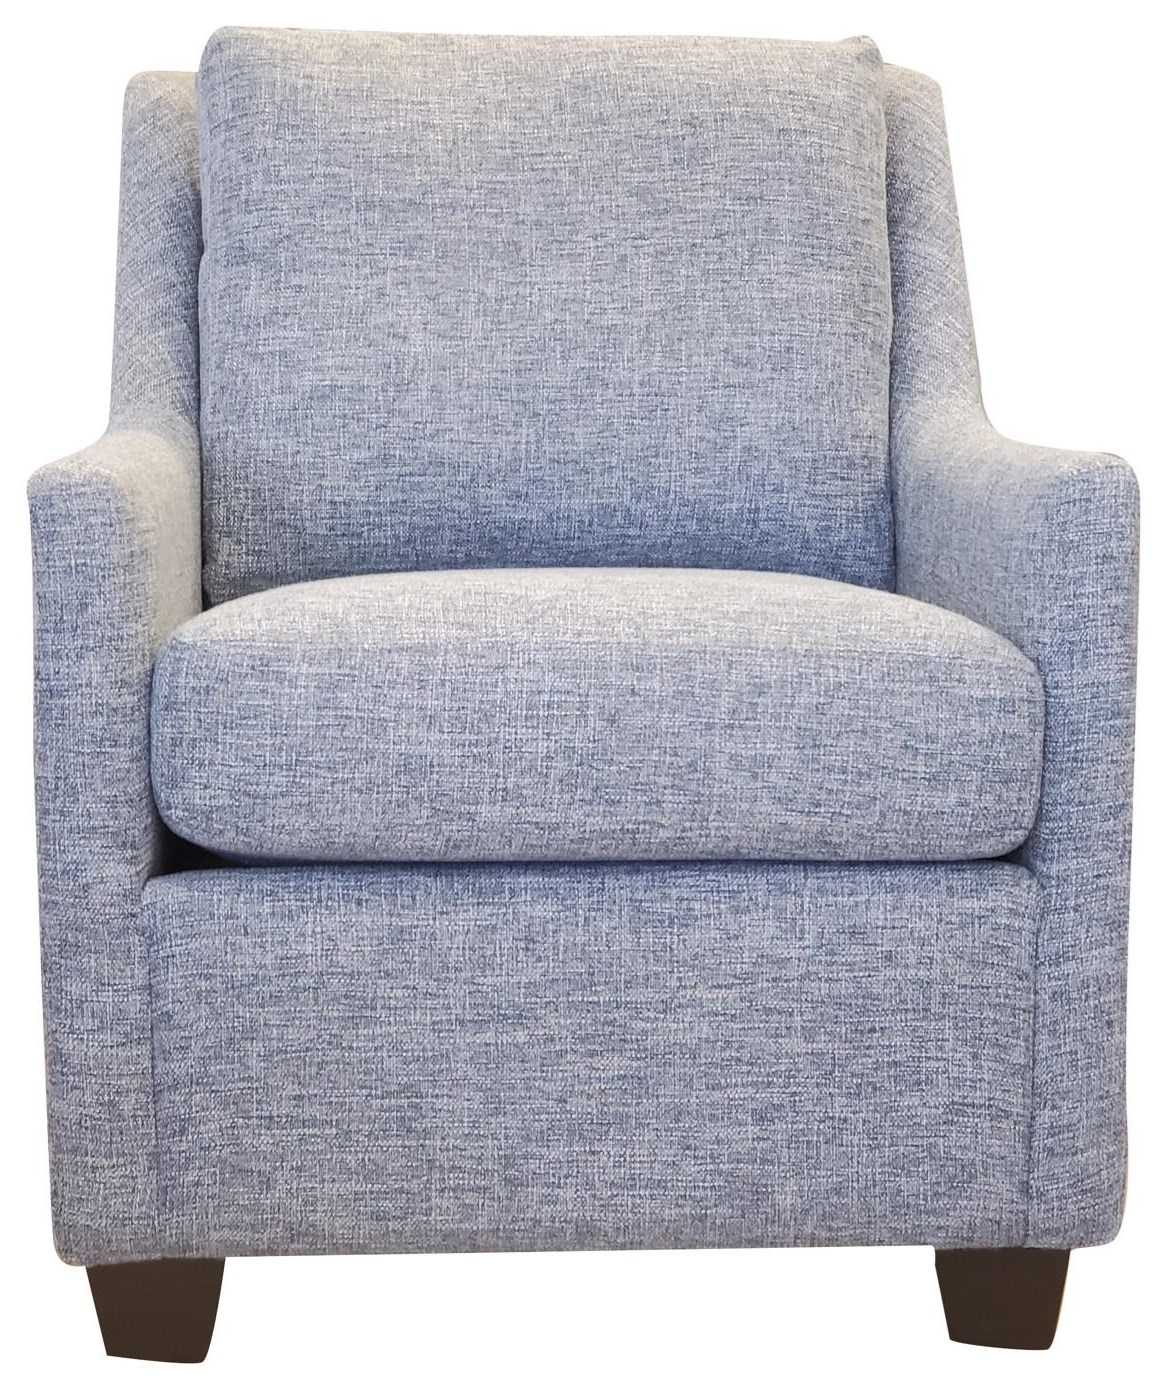 2626 DR Chair by Decor-Rest at Upper Room Home Furnishings